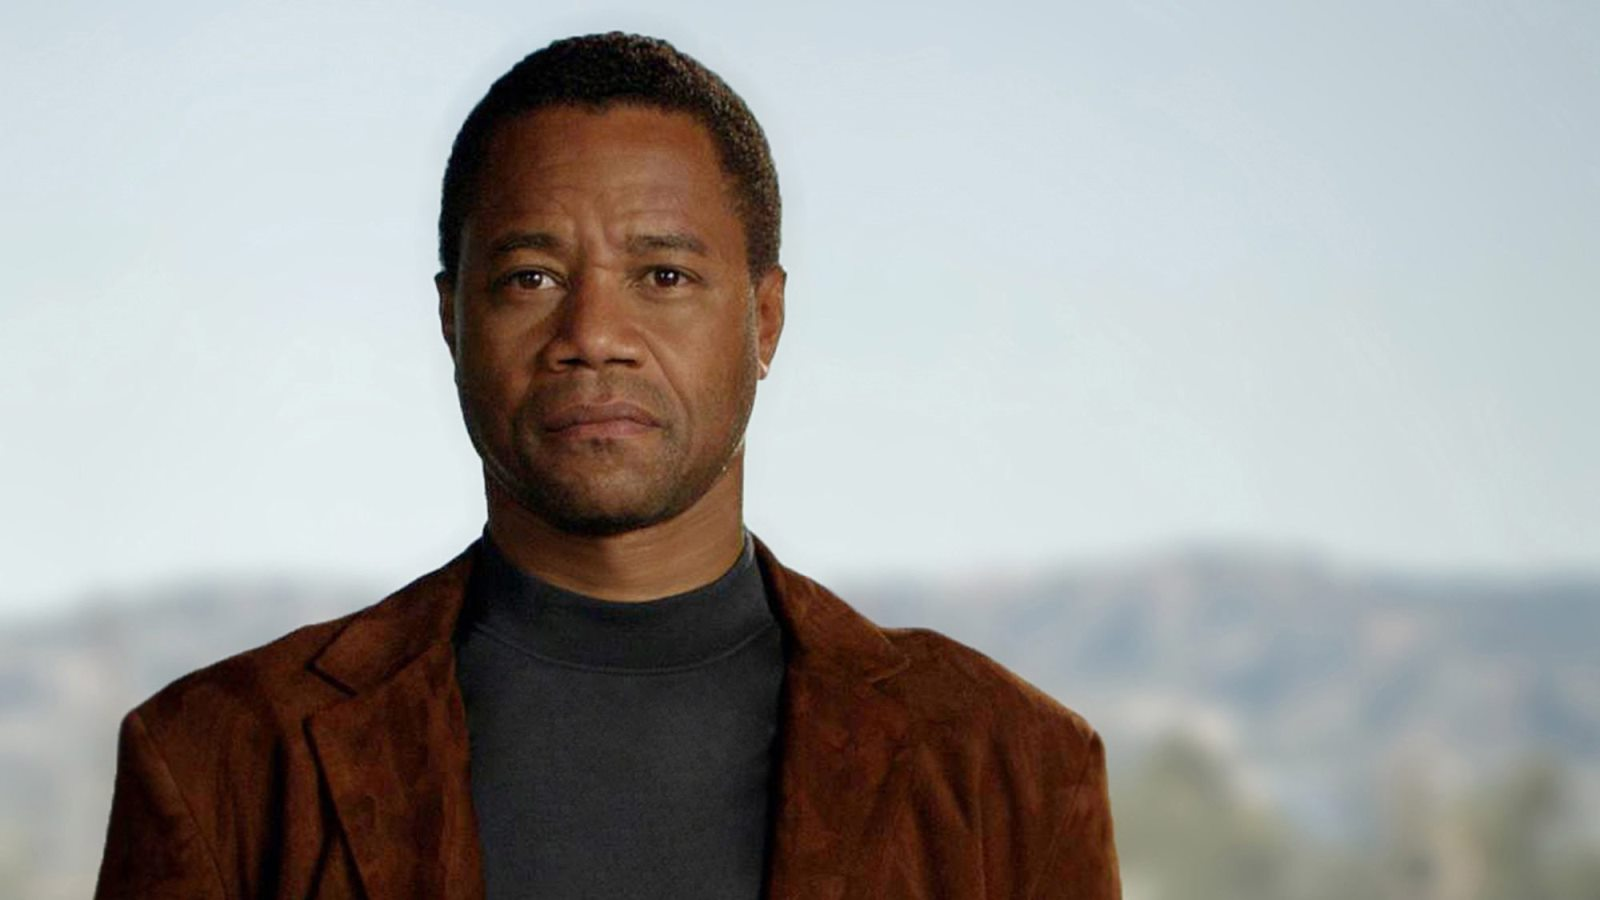 Cuba Gooding Jr. portrays O.J. Simpson in 'The People v. O.J. Simpson.' (FX promotional image)